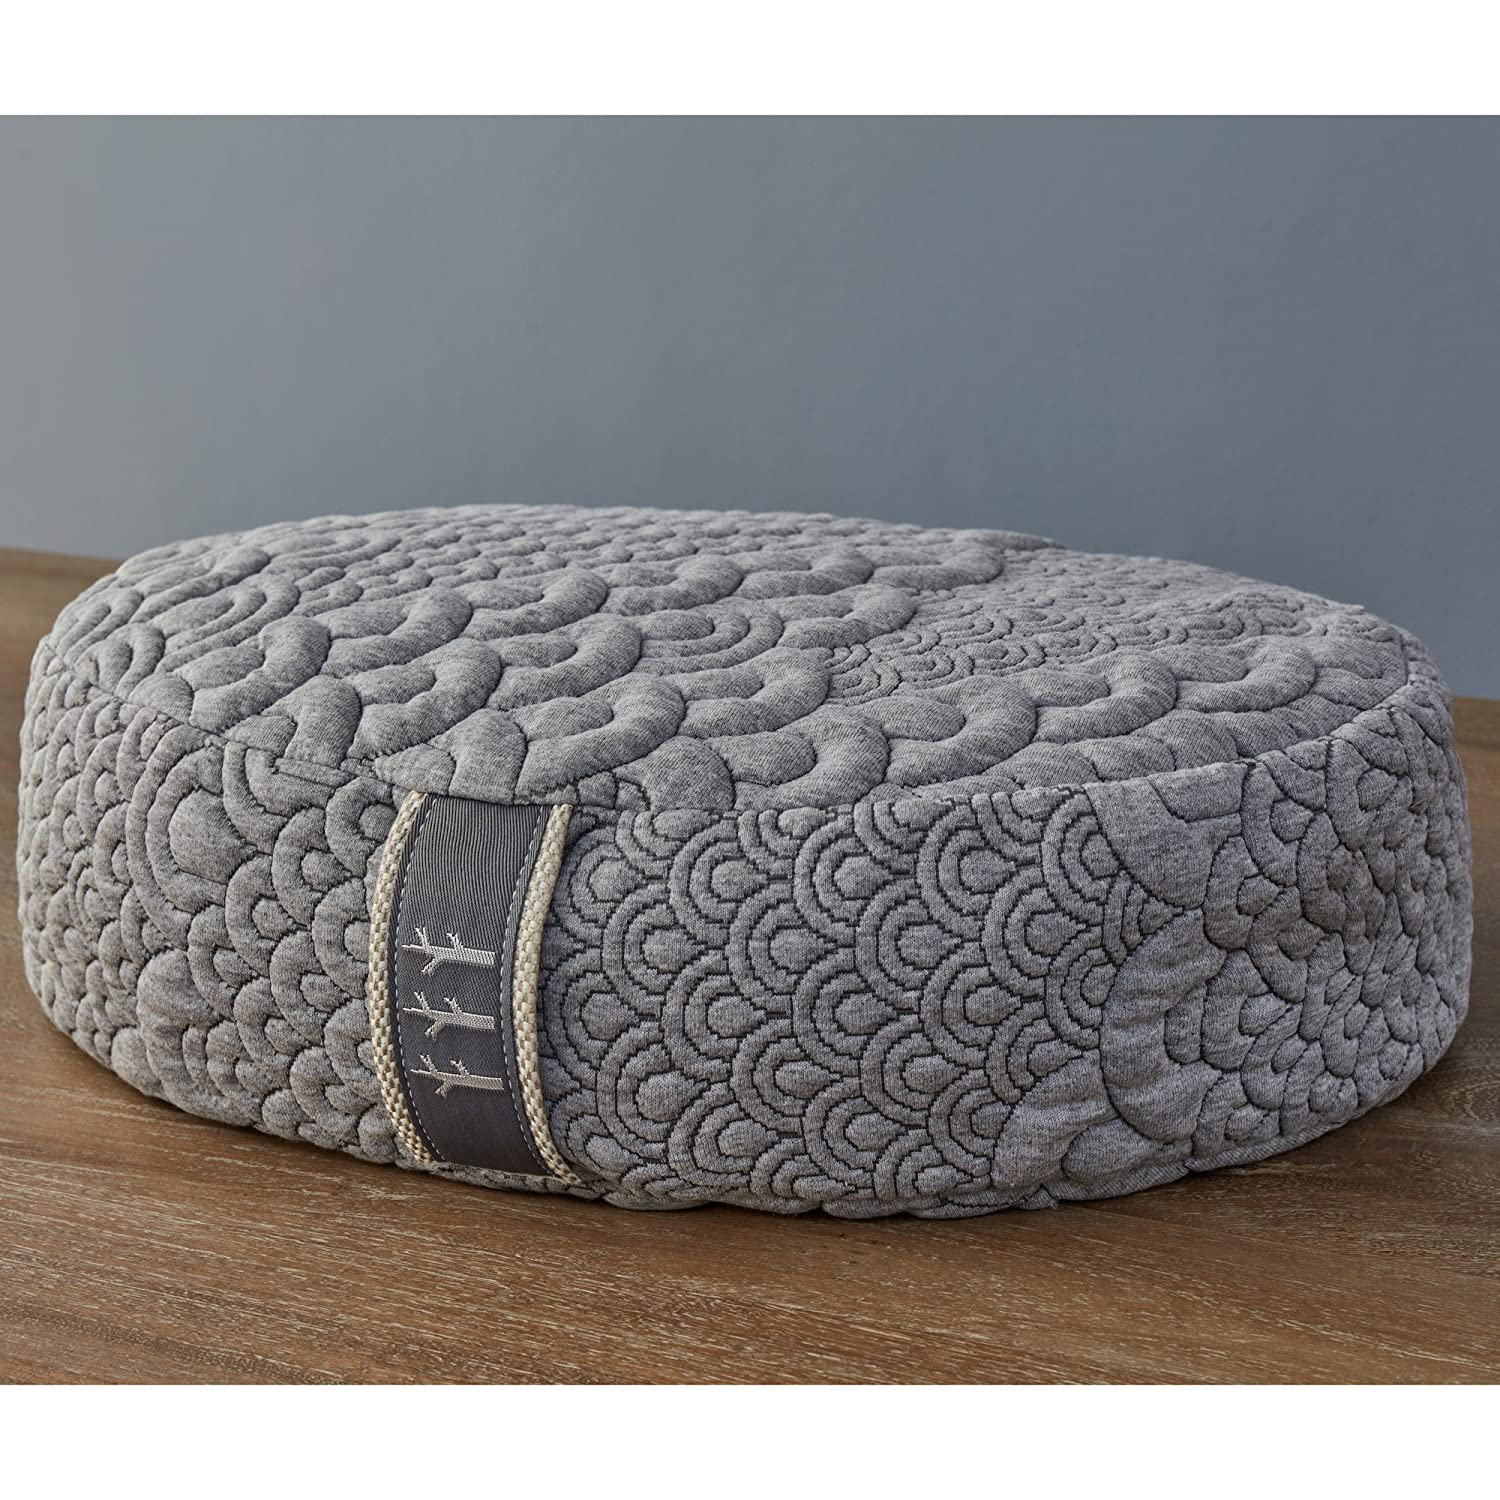 Top 5 Best Meditation Cushion Reviews in 2020 4